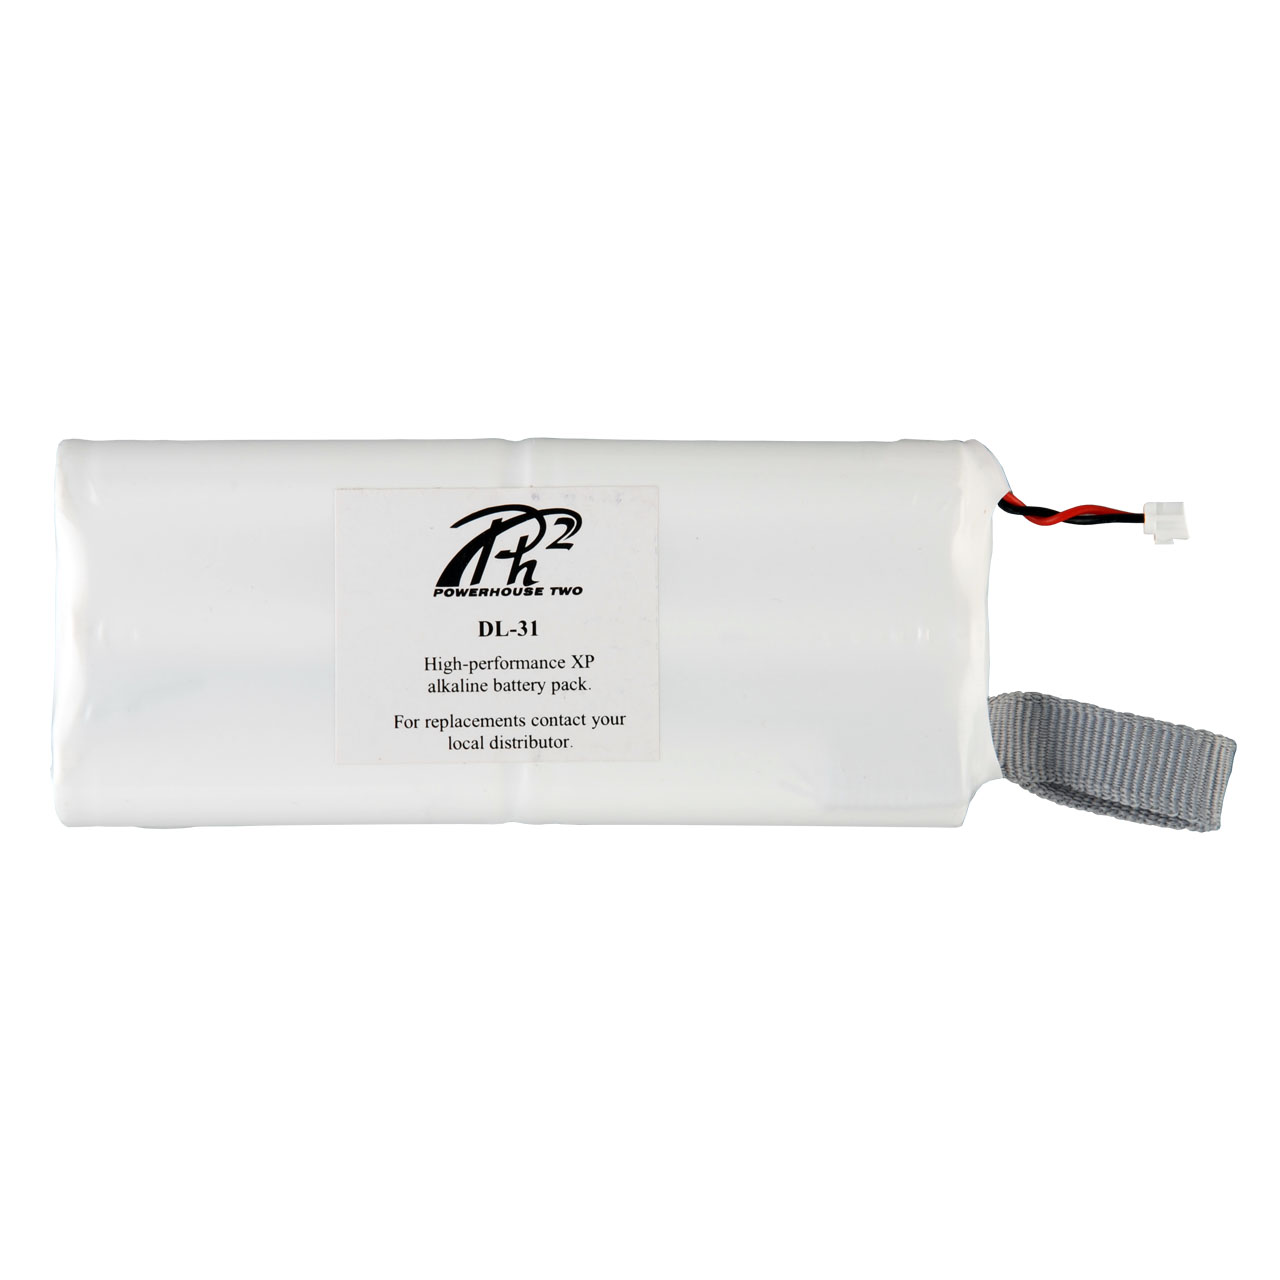 DL-31 Hospitality Battery Pack